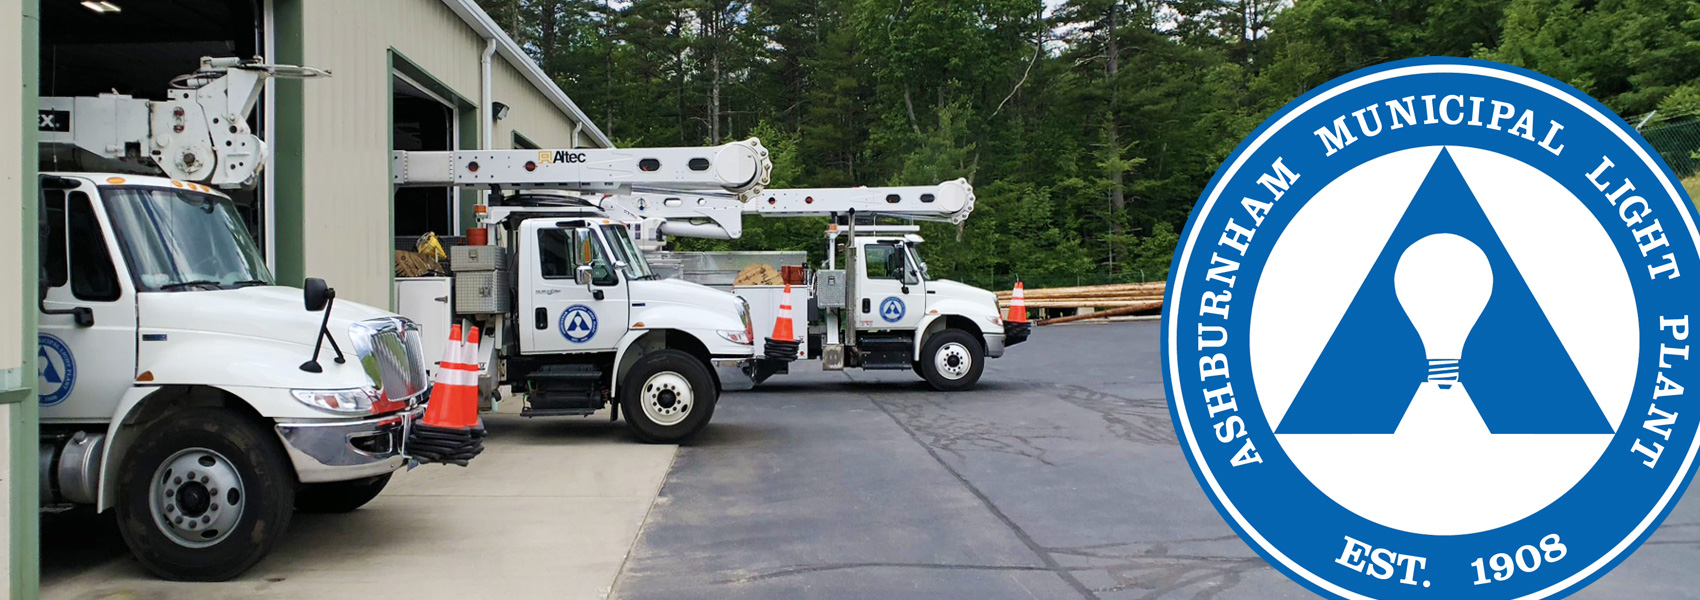 AMLP's Fleet at the Headquarters in Ashburnham, MA